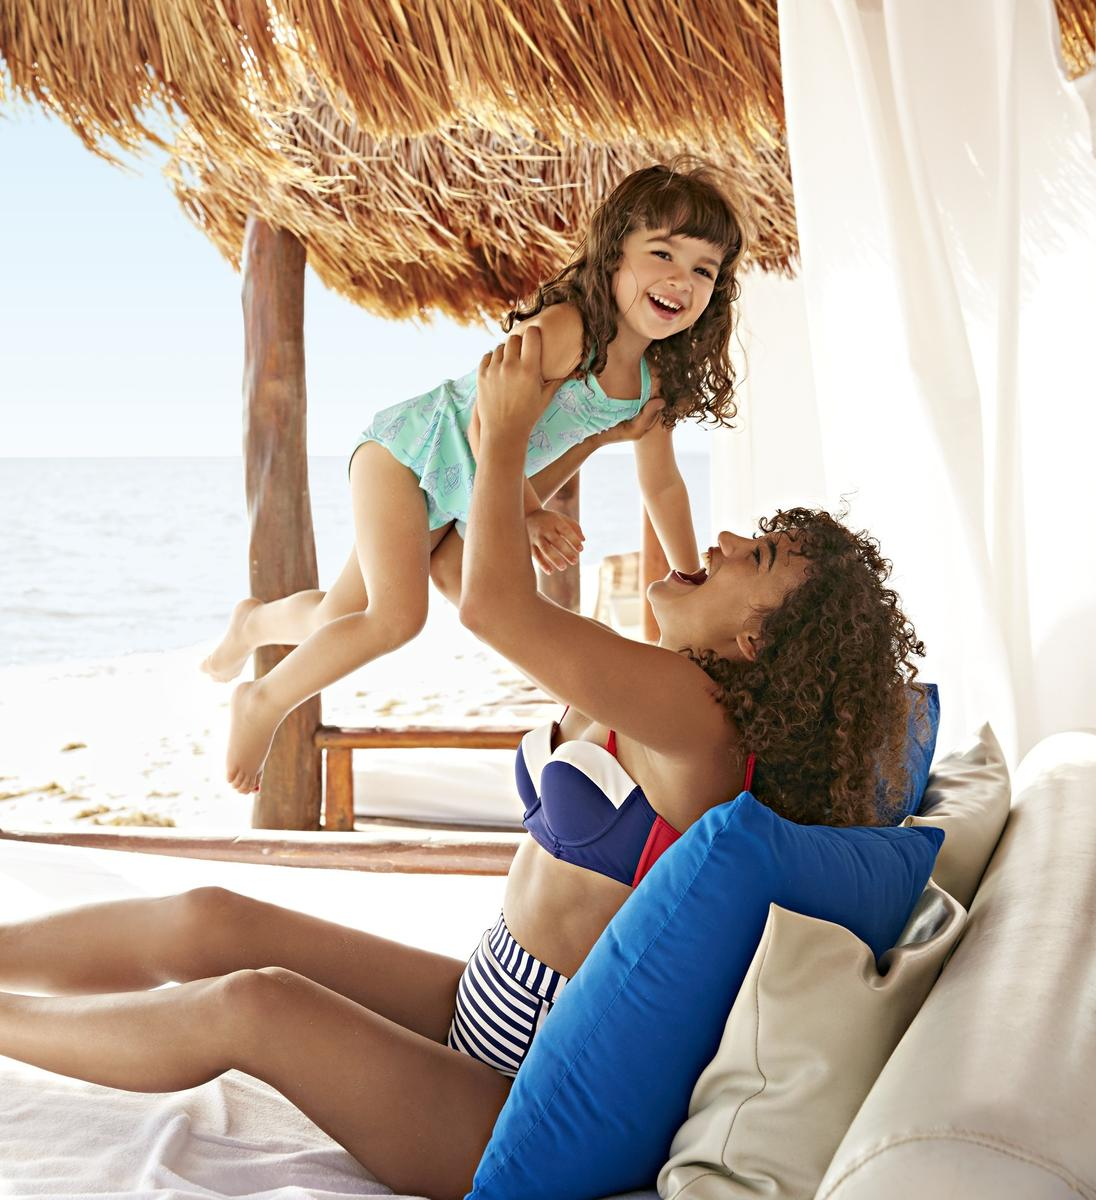 Mom with Curly Hair Holding Daughter in a Cabana